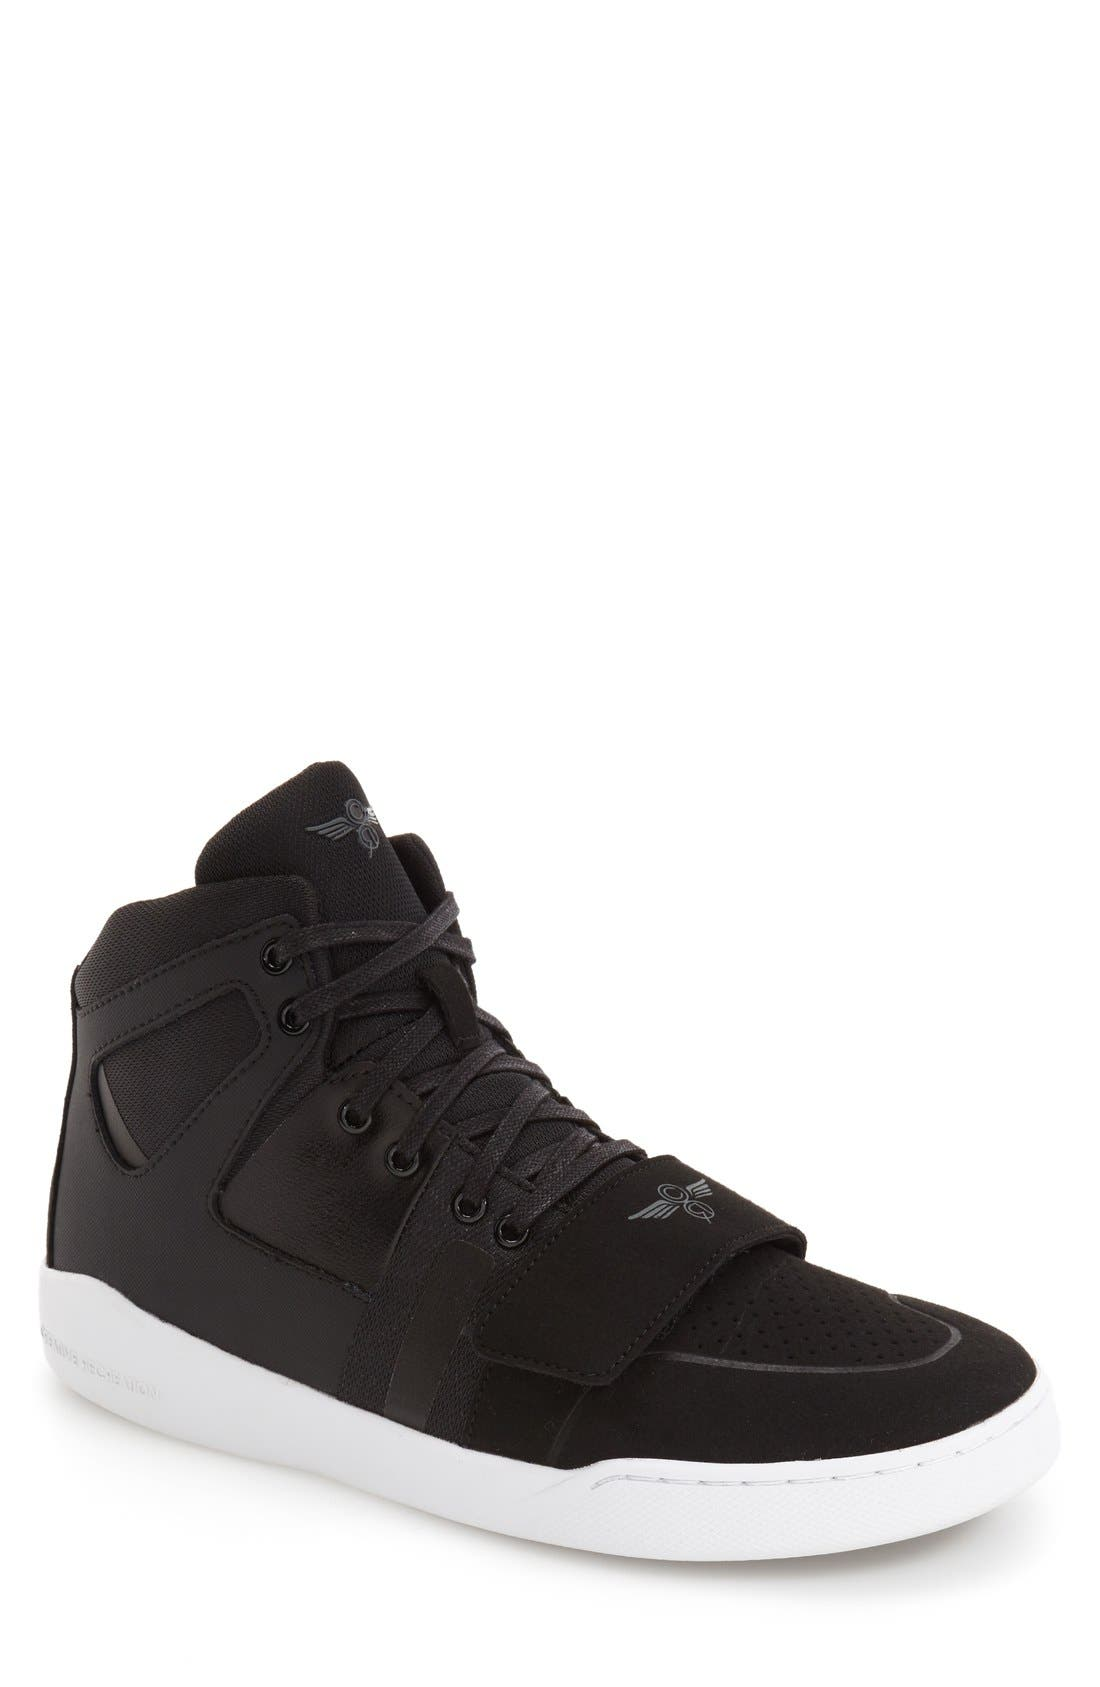 'Manzo' Sneaker,                         Main,                         color, Black Leather